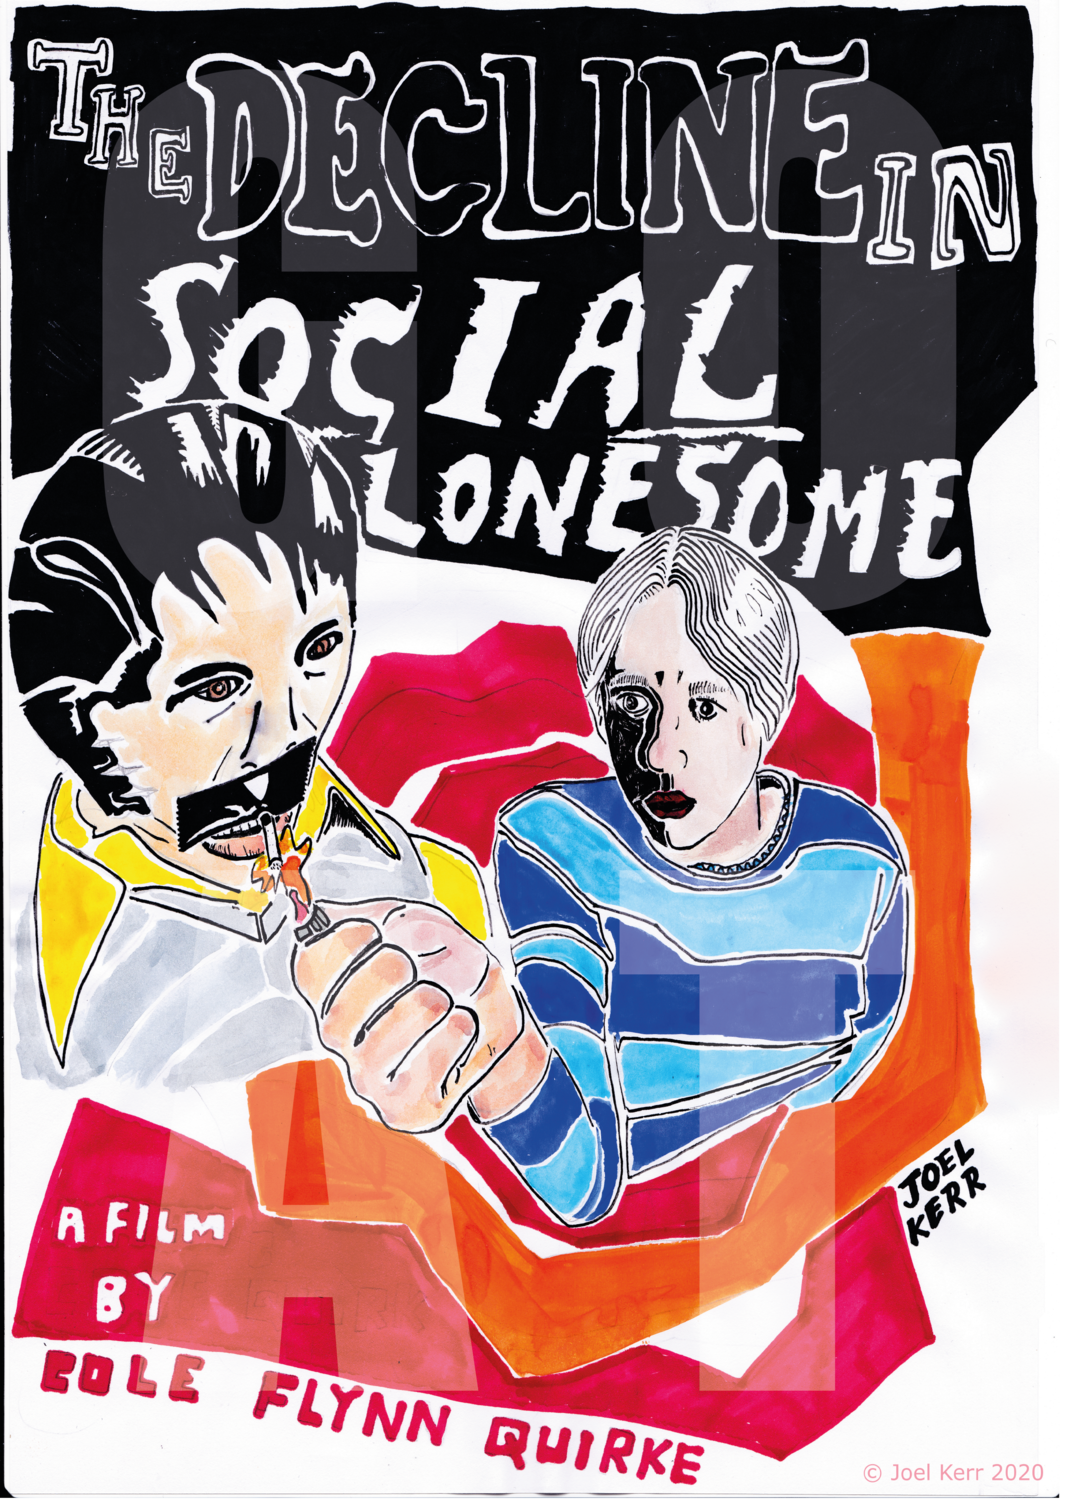 LIMITED EDITION FILM POSTER by Joel Kerr for <<A DECLINE IN SOCIAL LONESOME>> short film by Cole Flynn Quirke